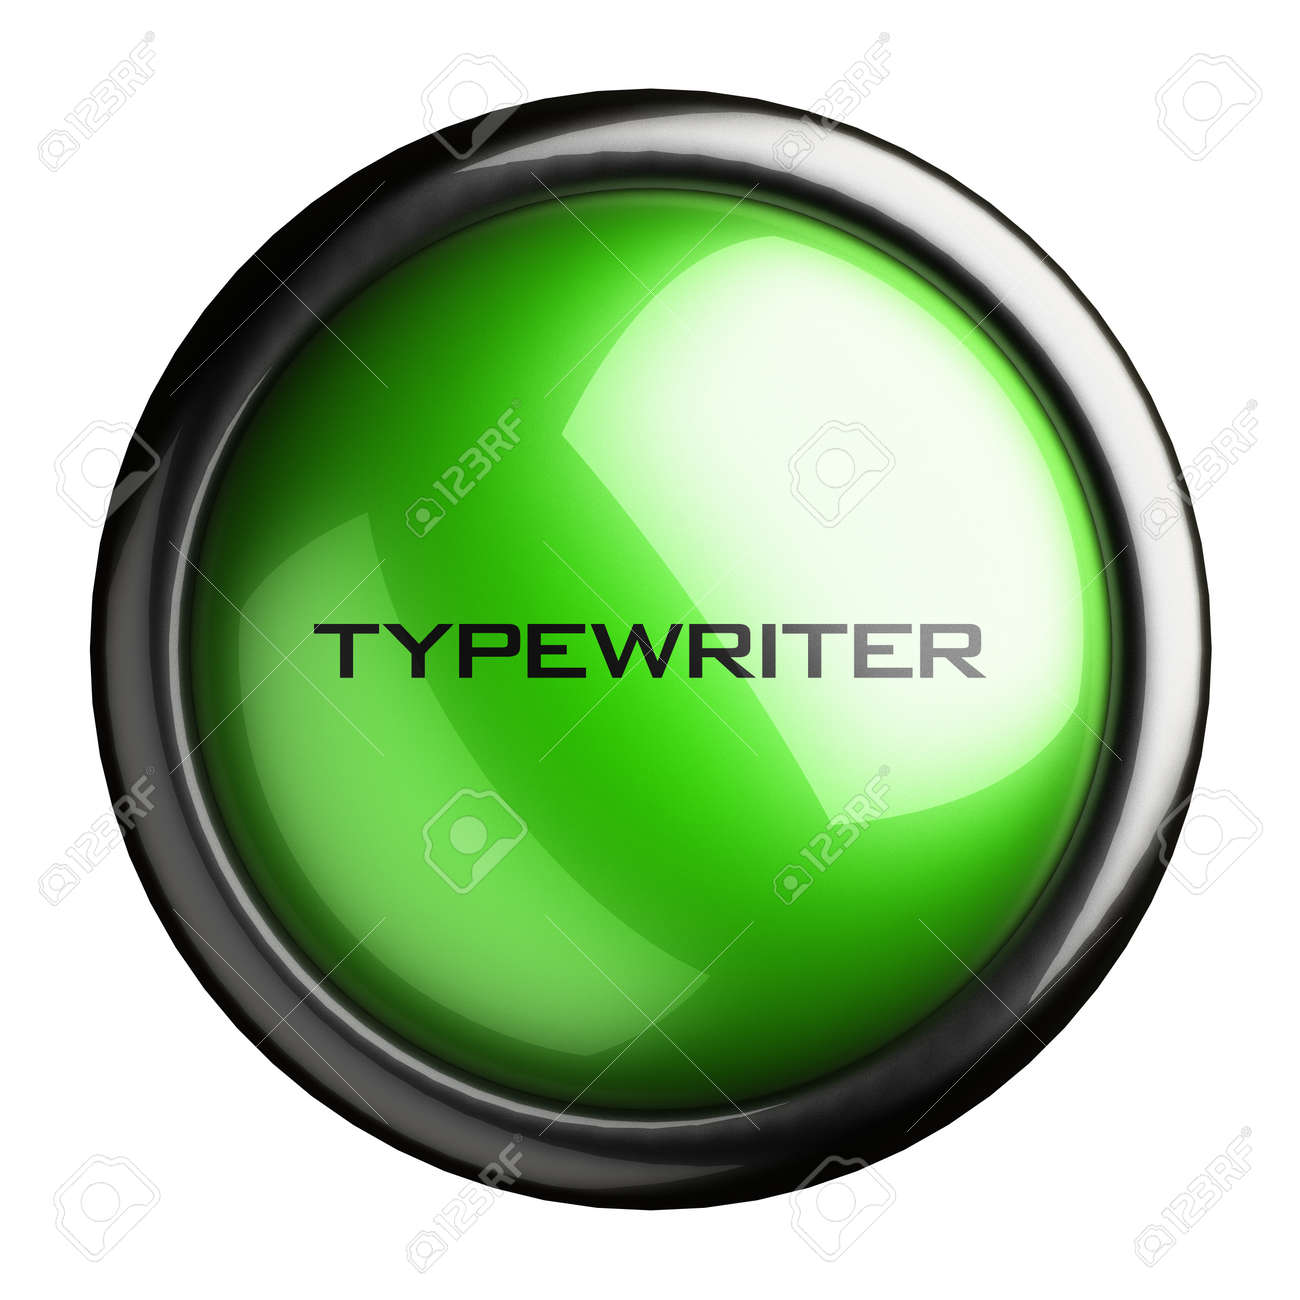 Word on the button Stock Photo - 16611542